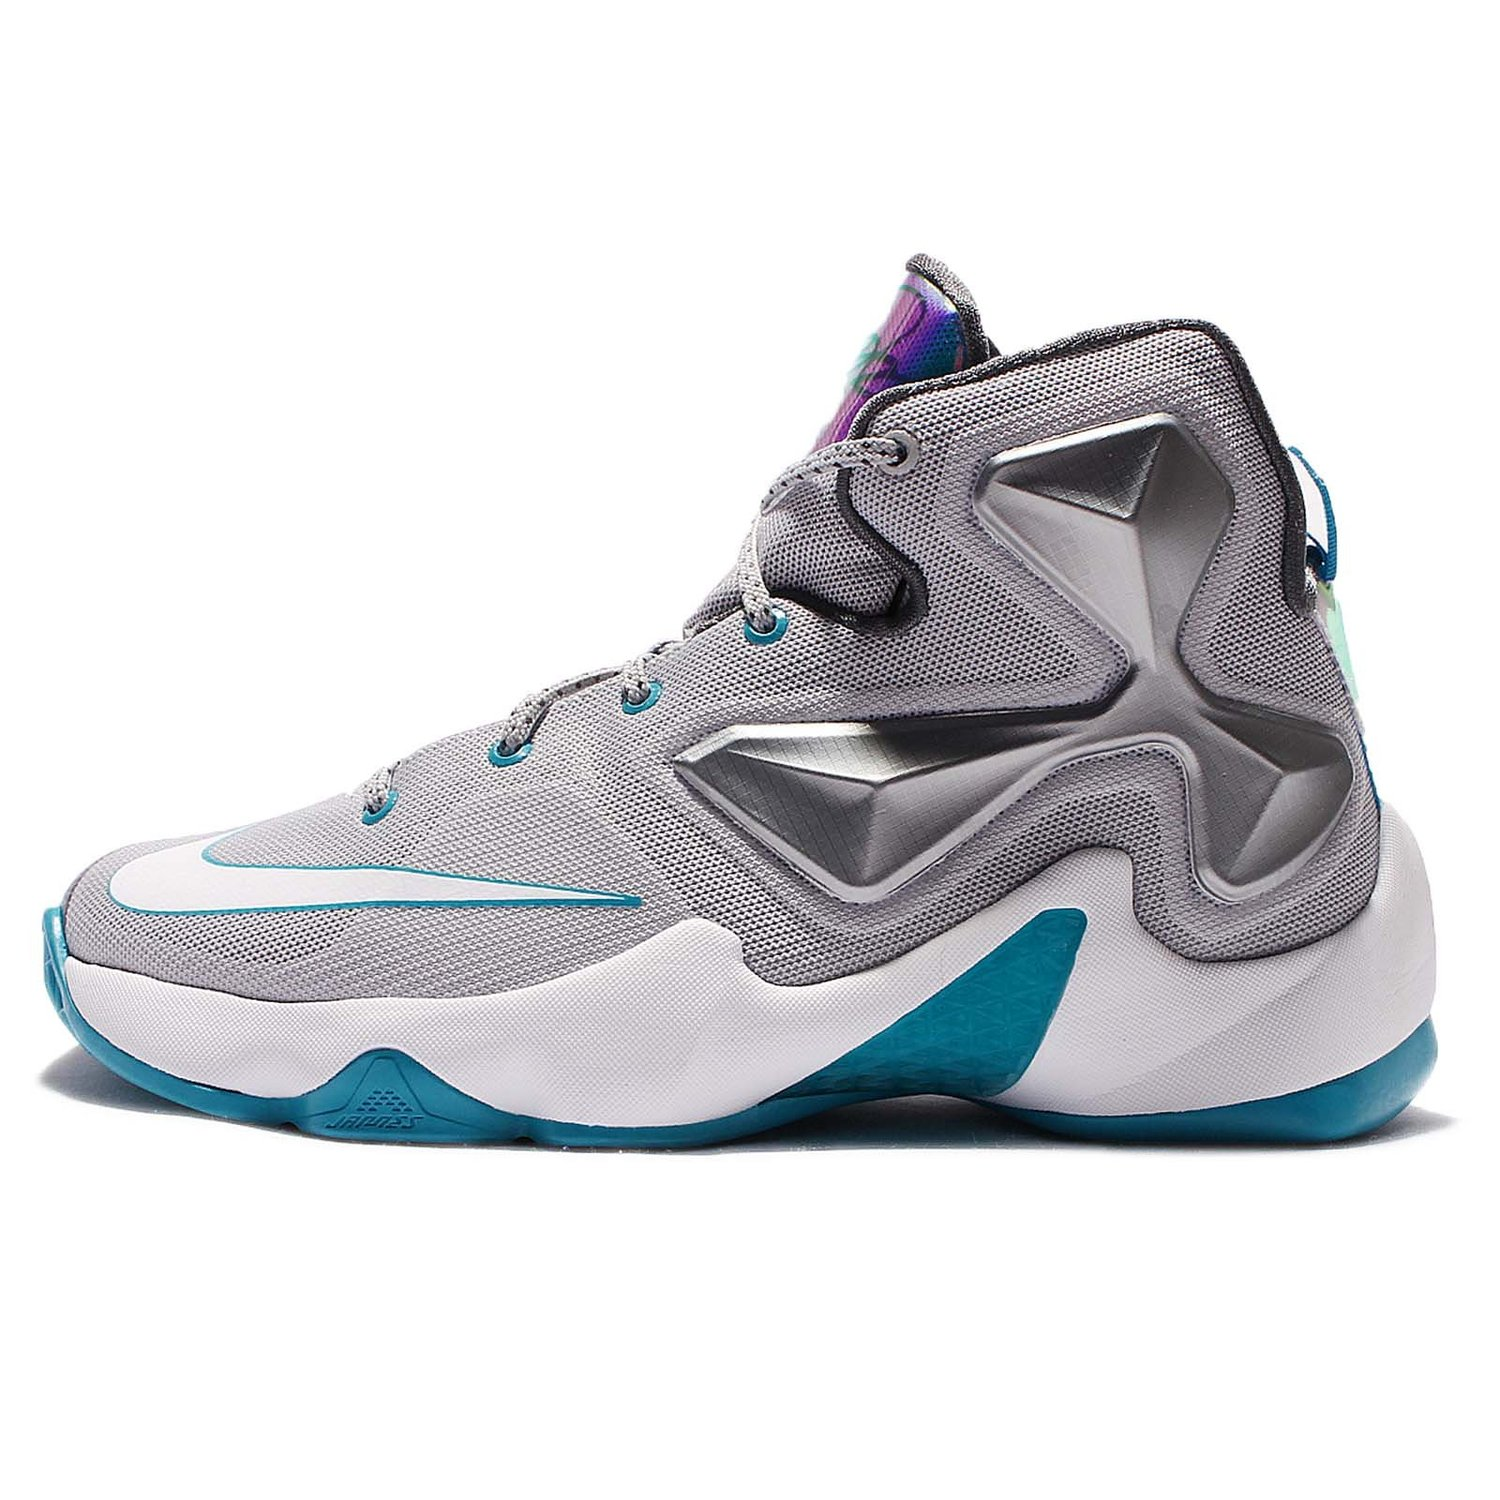 b6ee80c826d20 Get Quotations · Nike Kid s Lebron XIII GS